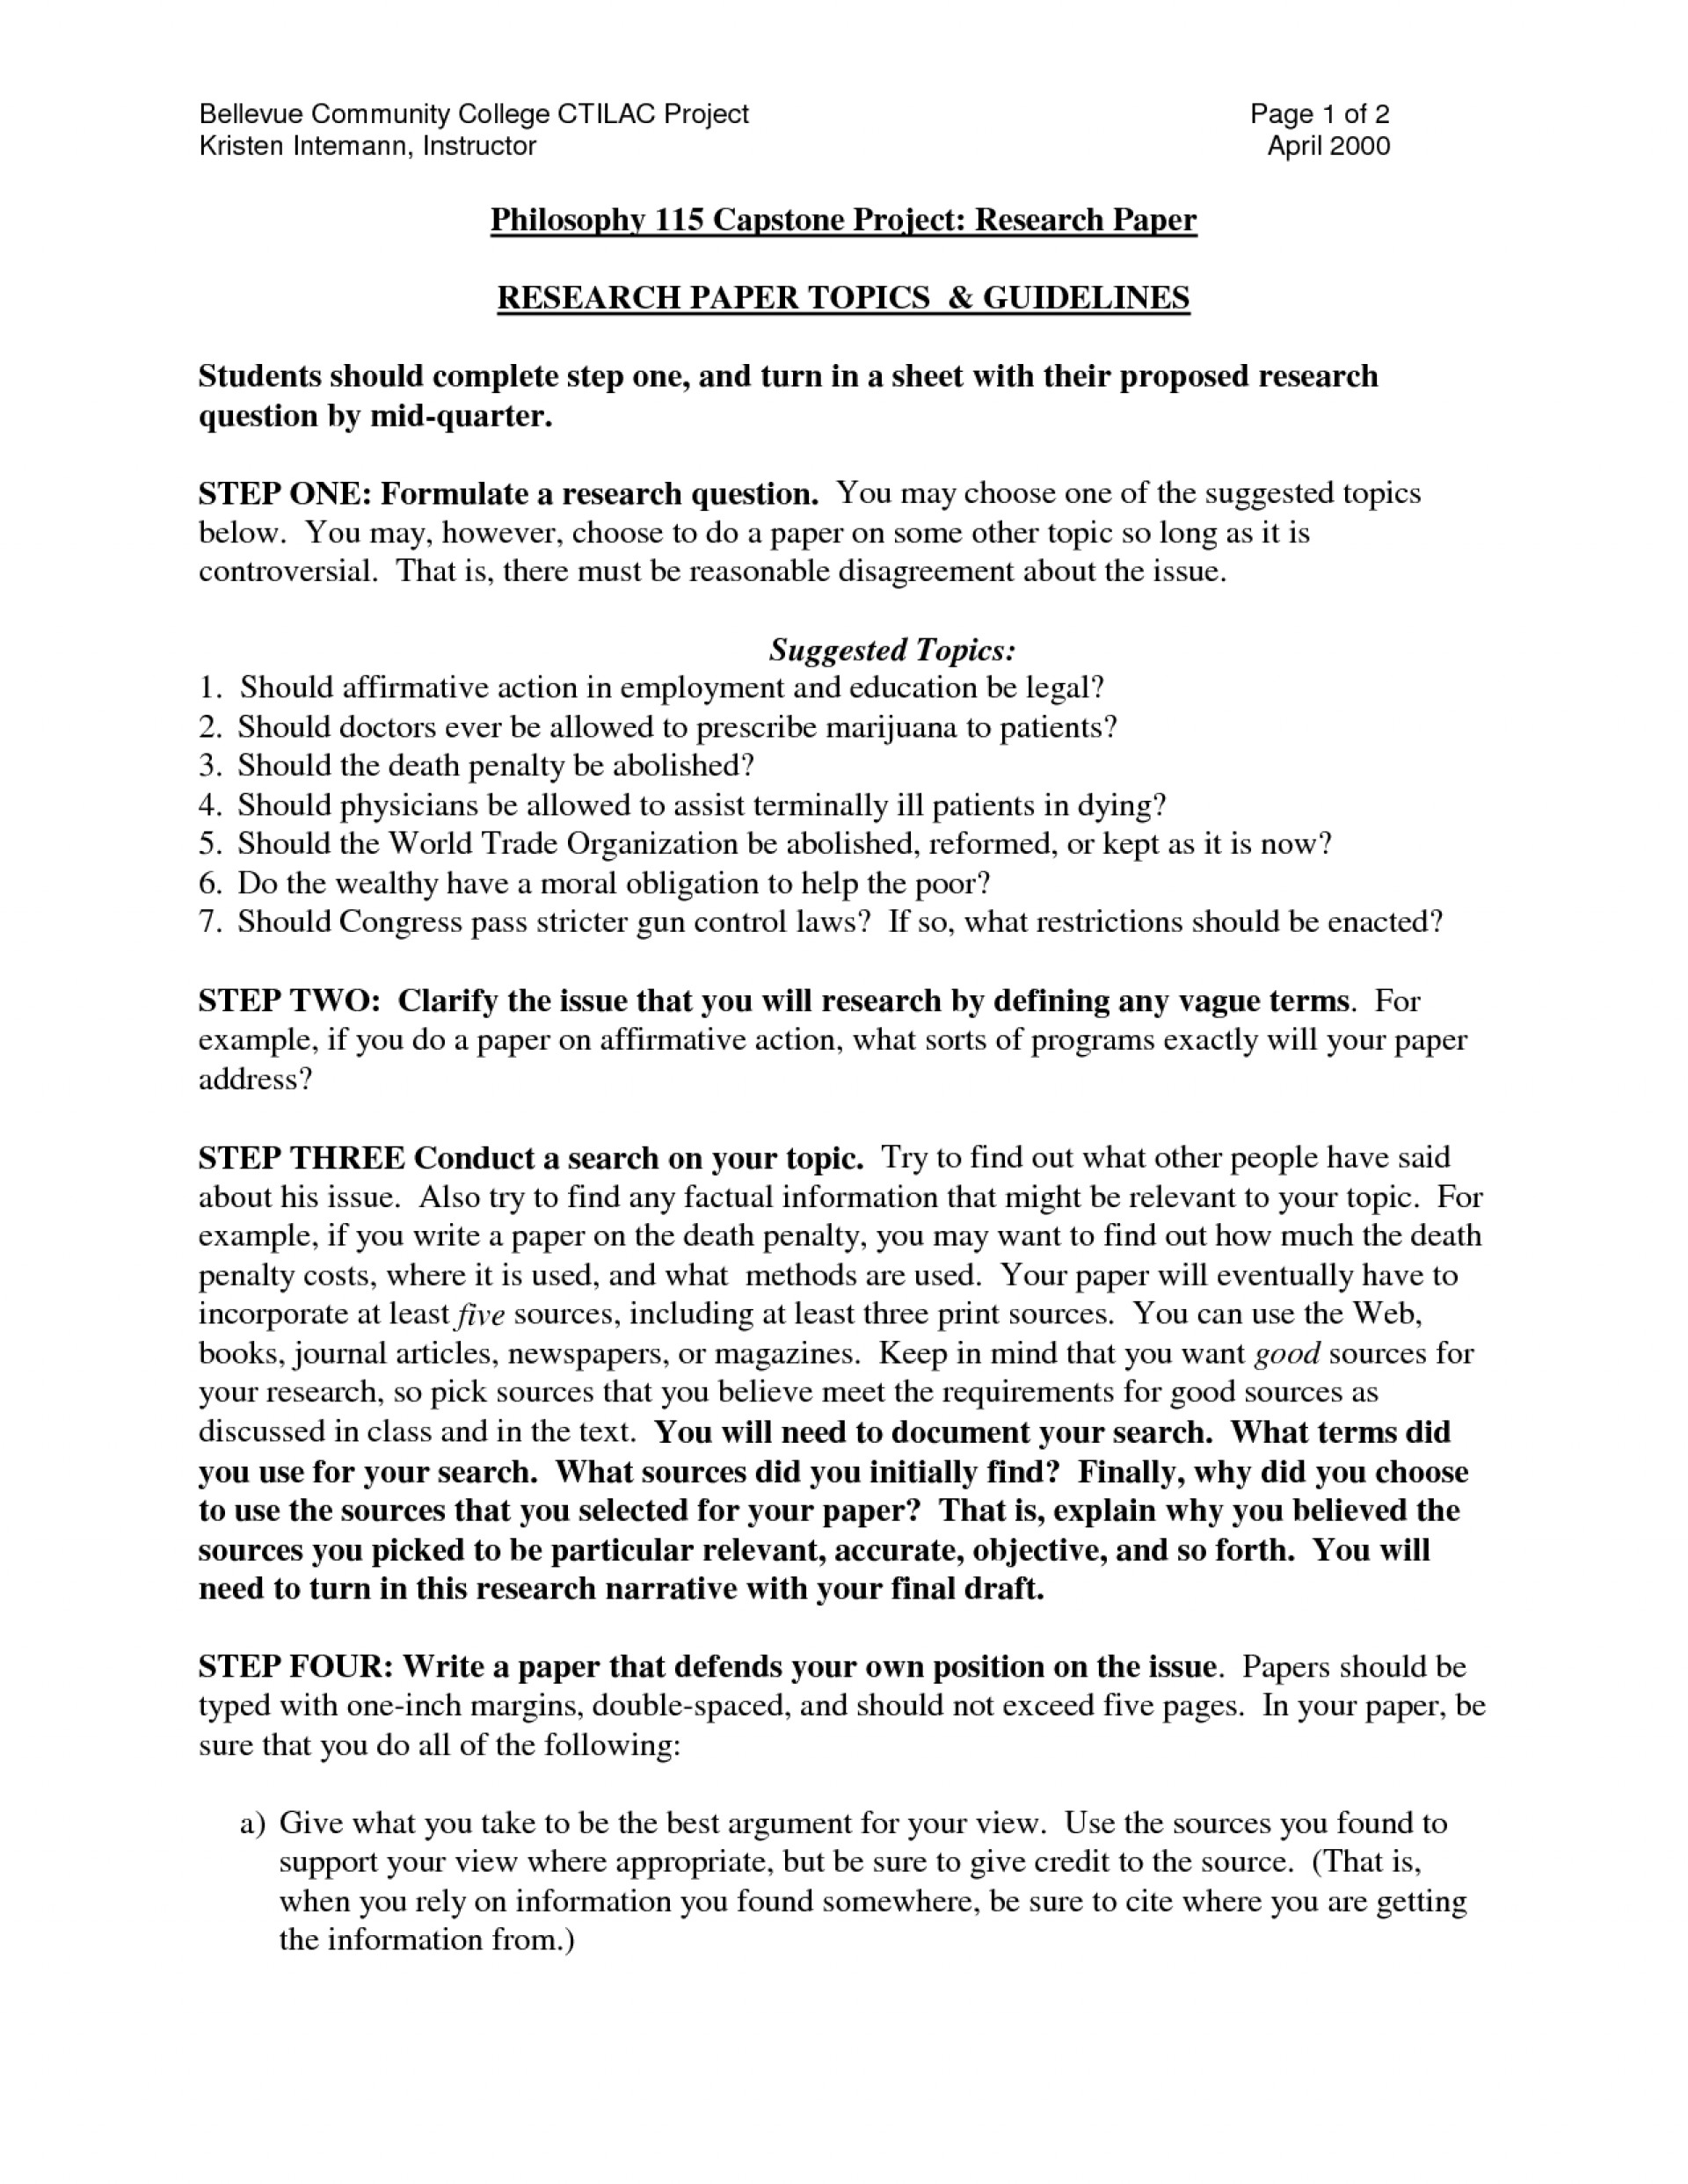 High School Vs College Essay  Essays Term Papers also How To Start A Business Essay  Mla Style Research Paper Format College Example Essays  High School Essay Format